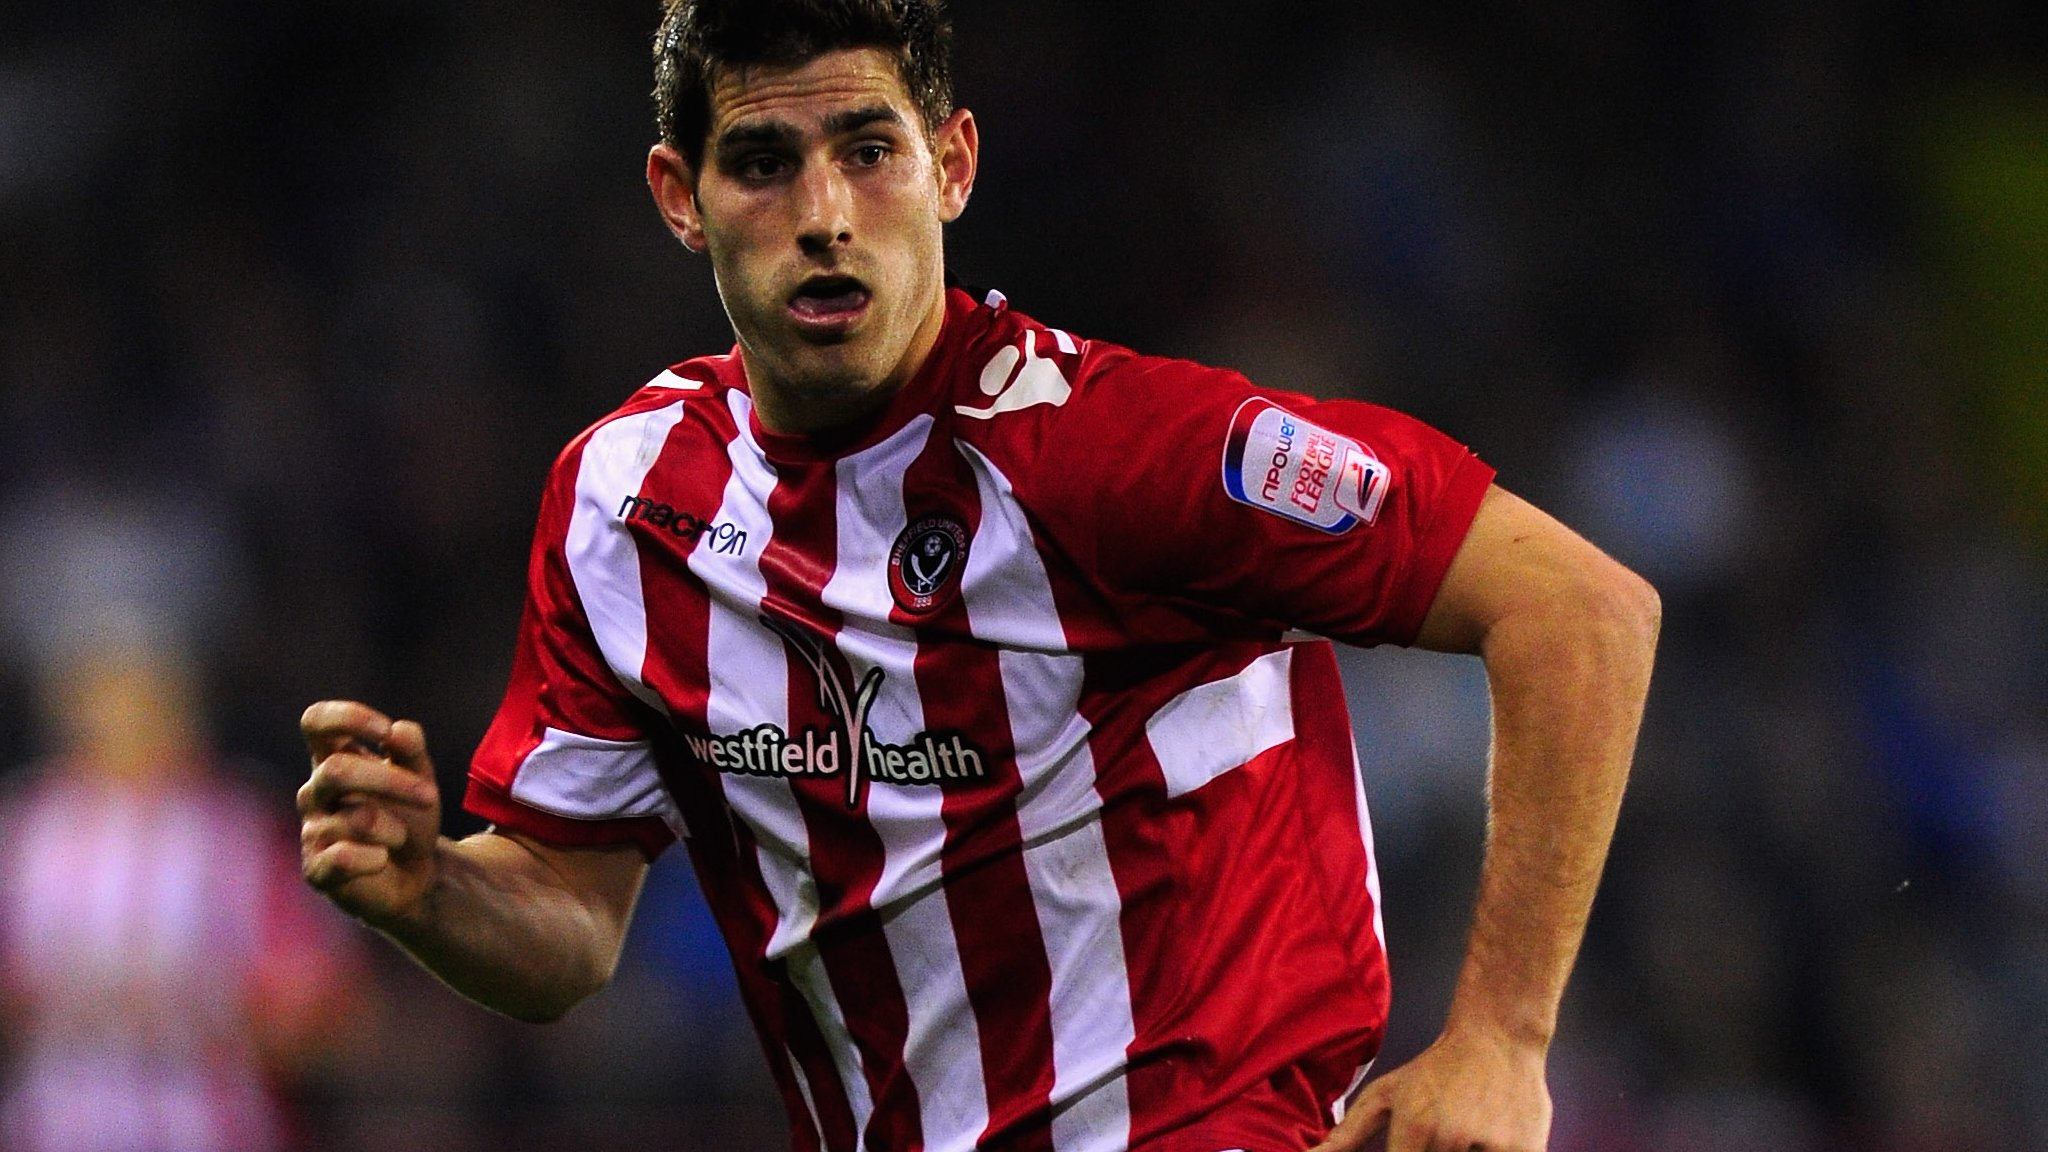 Ched Evans: Sheffield United Set to Re-sign Striker from Chesterfield